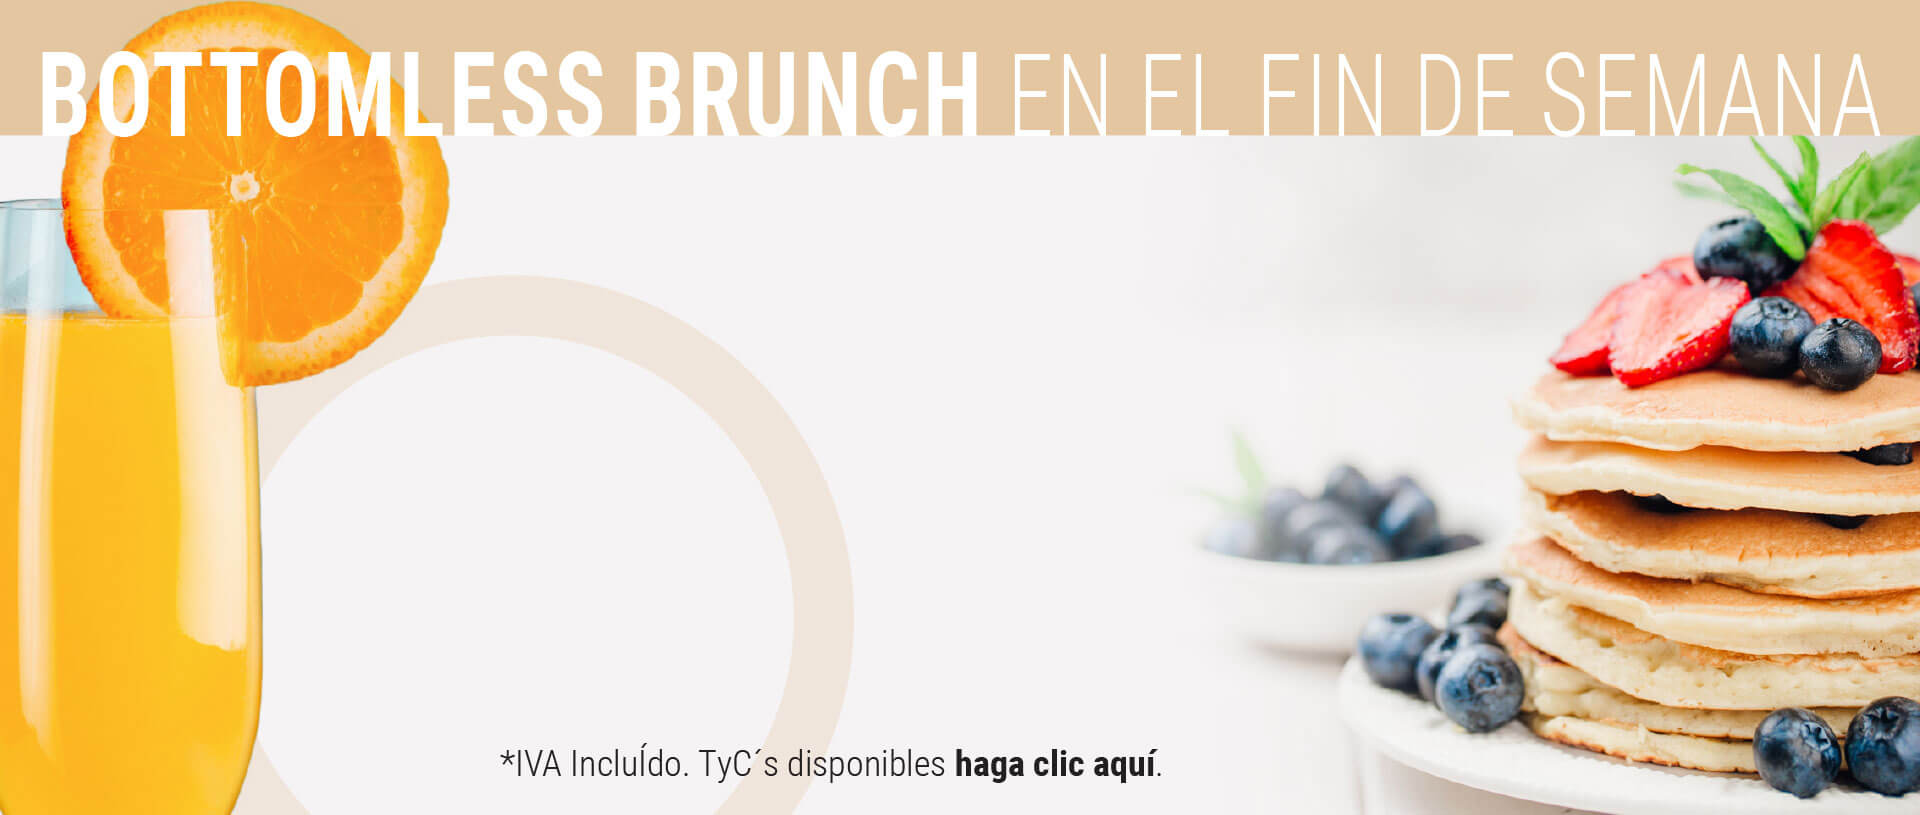 La Sala Bottomless Brunch in Marbella